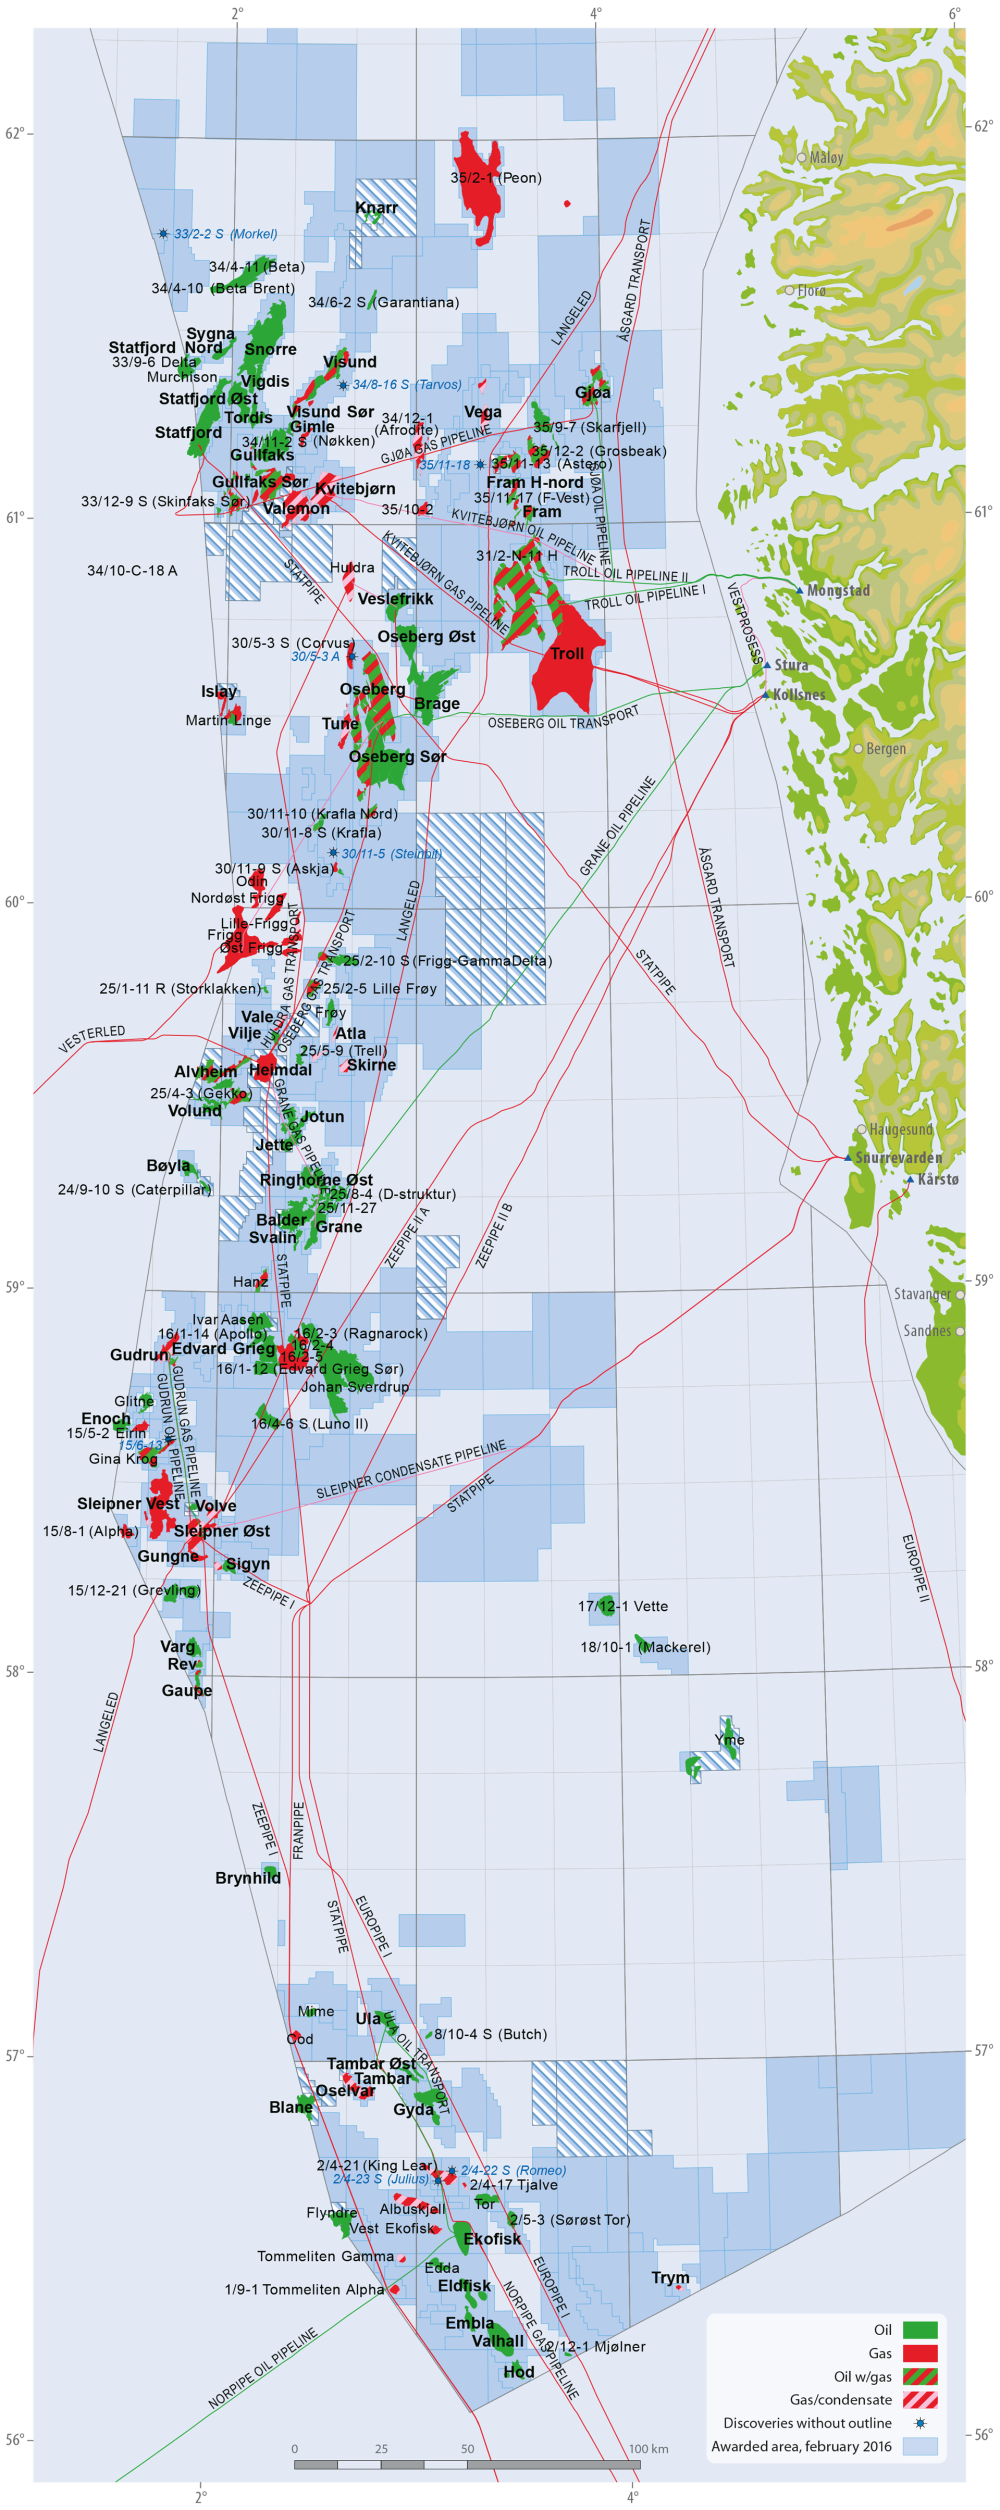 Fields and discoveries in the North Sea